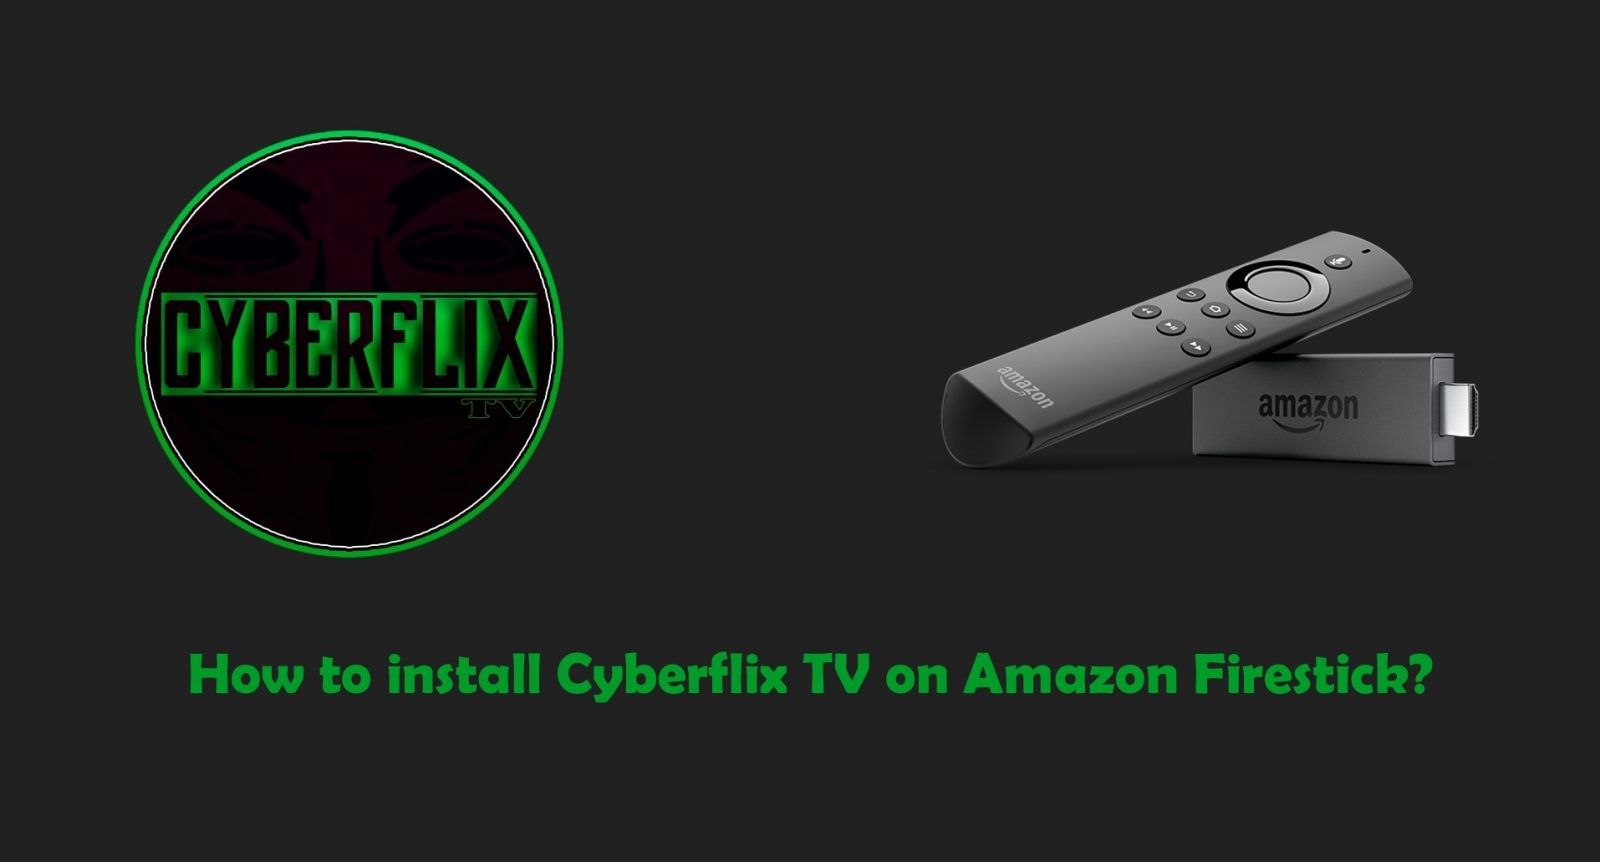 Cyberflix TV on Firestick